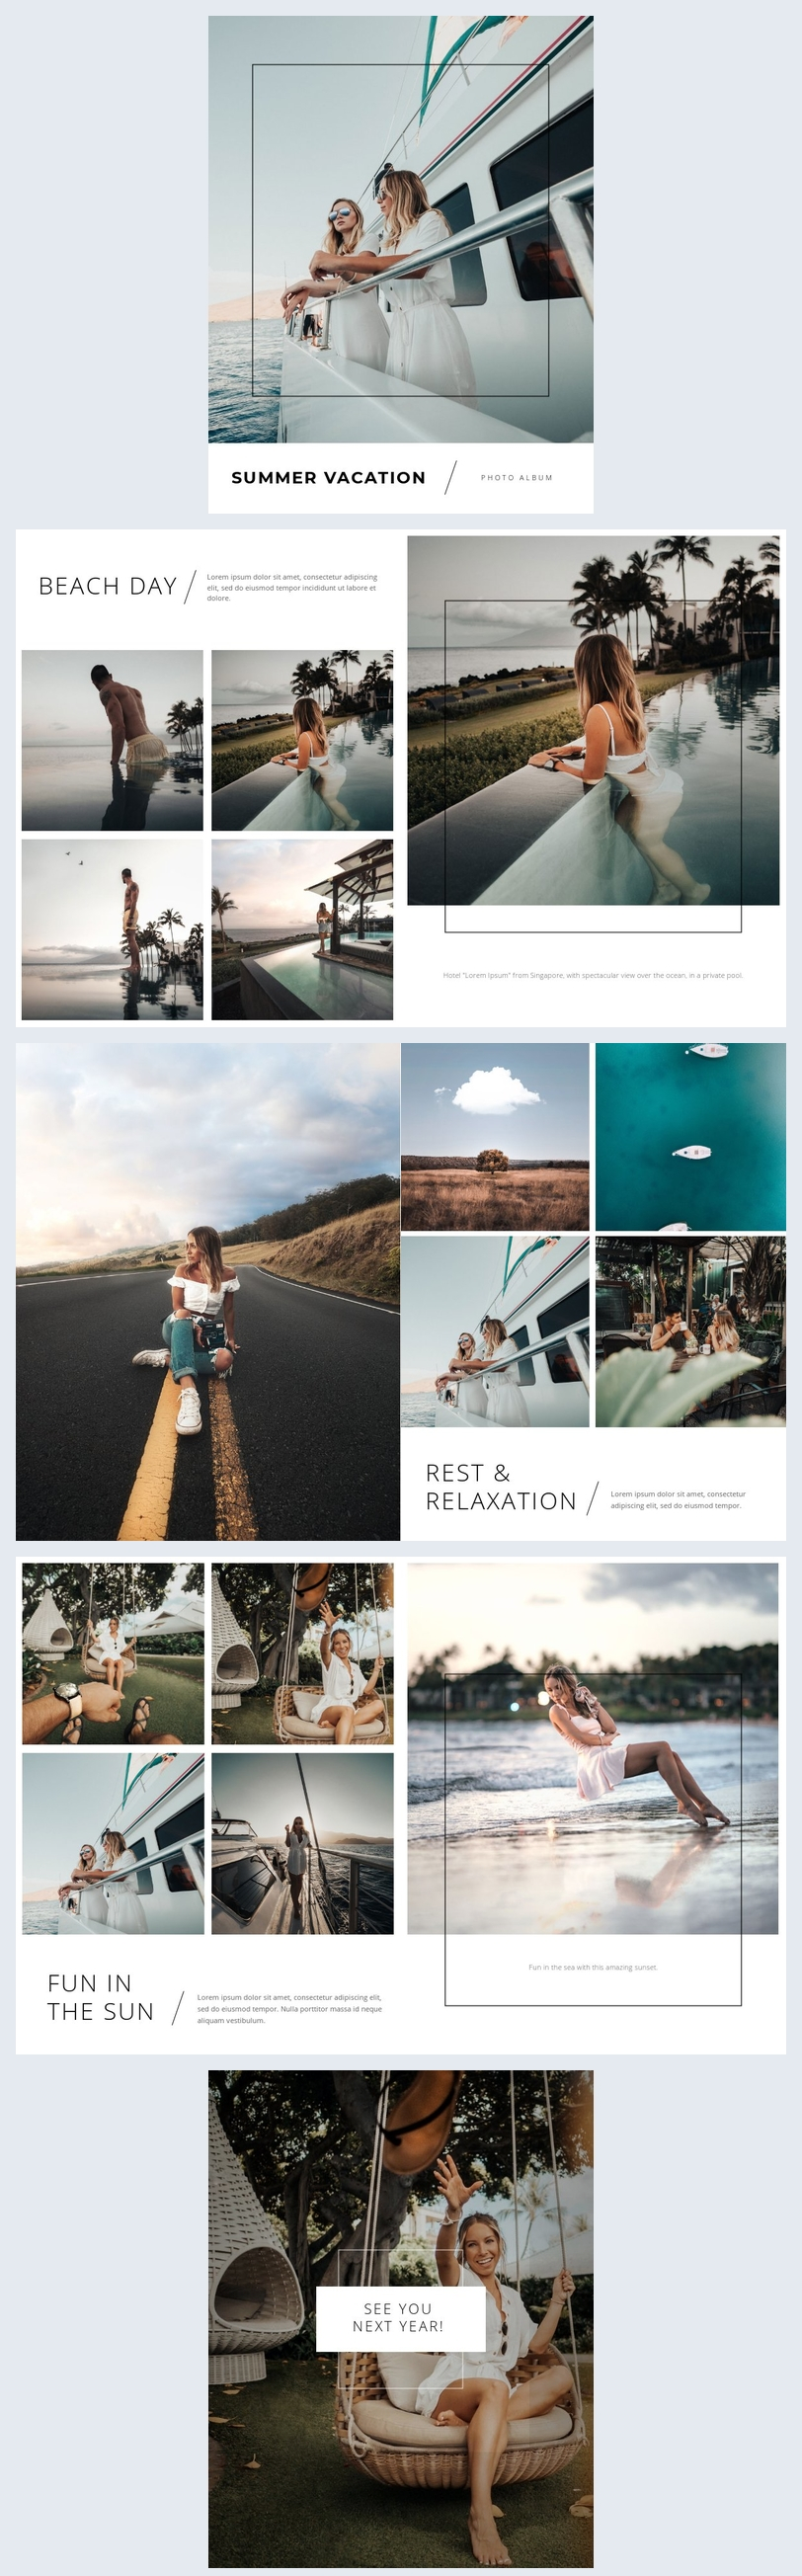 Elegant Vacation Photo Album Template